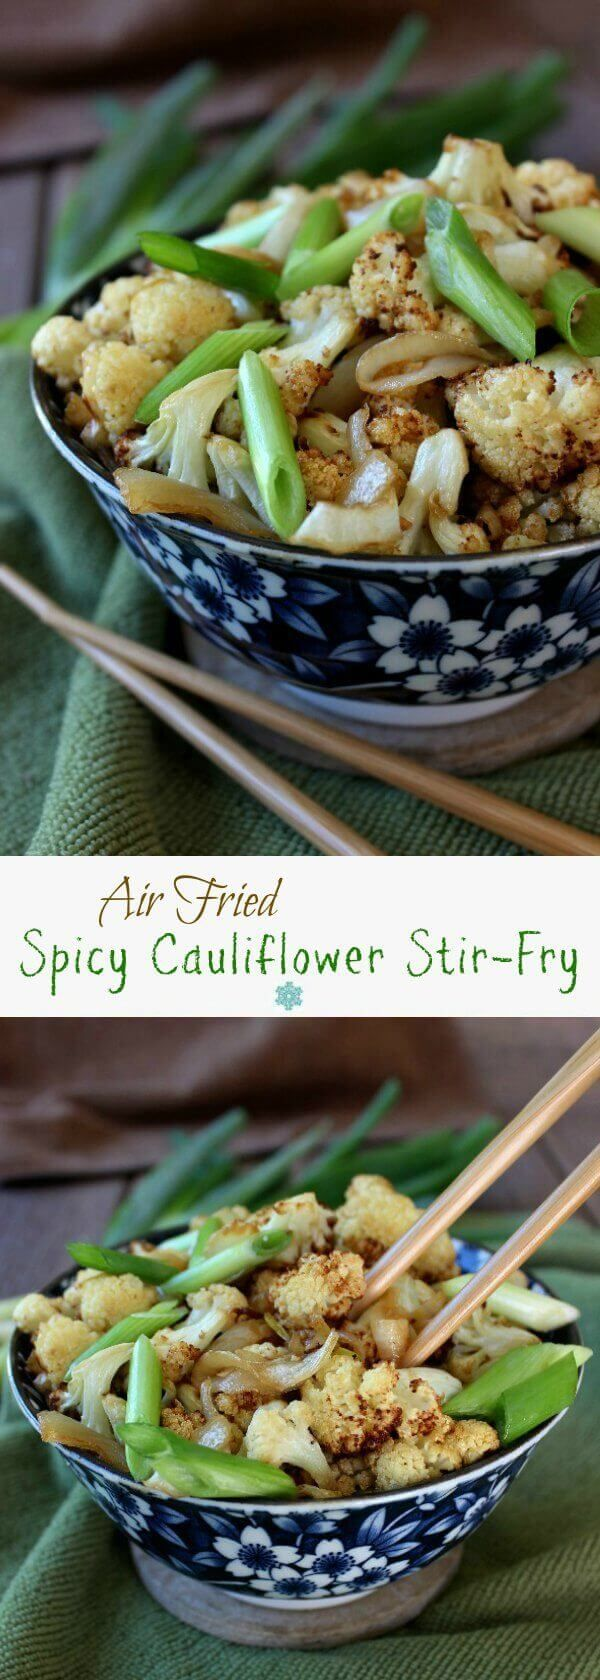 Air Fried Spicy Cauliflower Stir-Fry is fast and simple. It is so gratifying to have a new side dish for your family to enjoy. Delicious flavors get you lots of compliments. ~ veganinthefreezer...